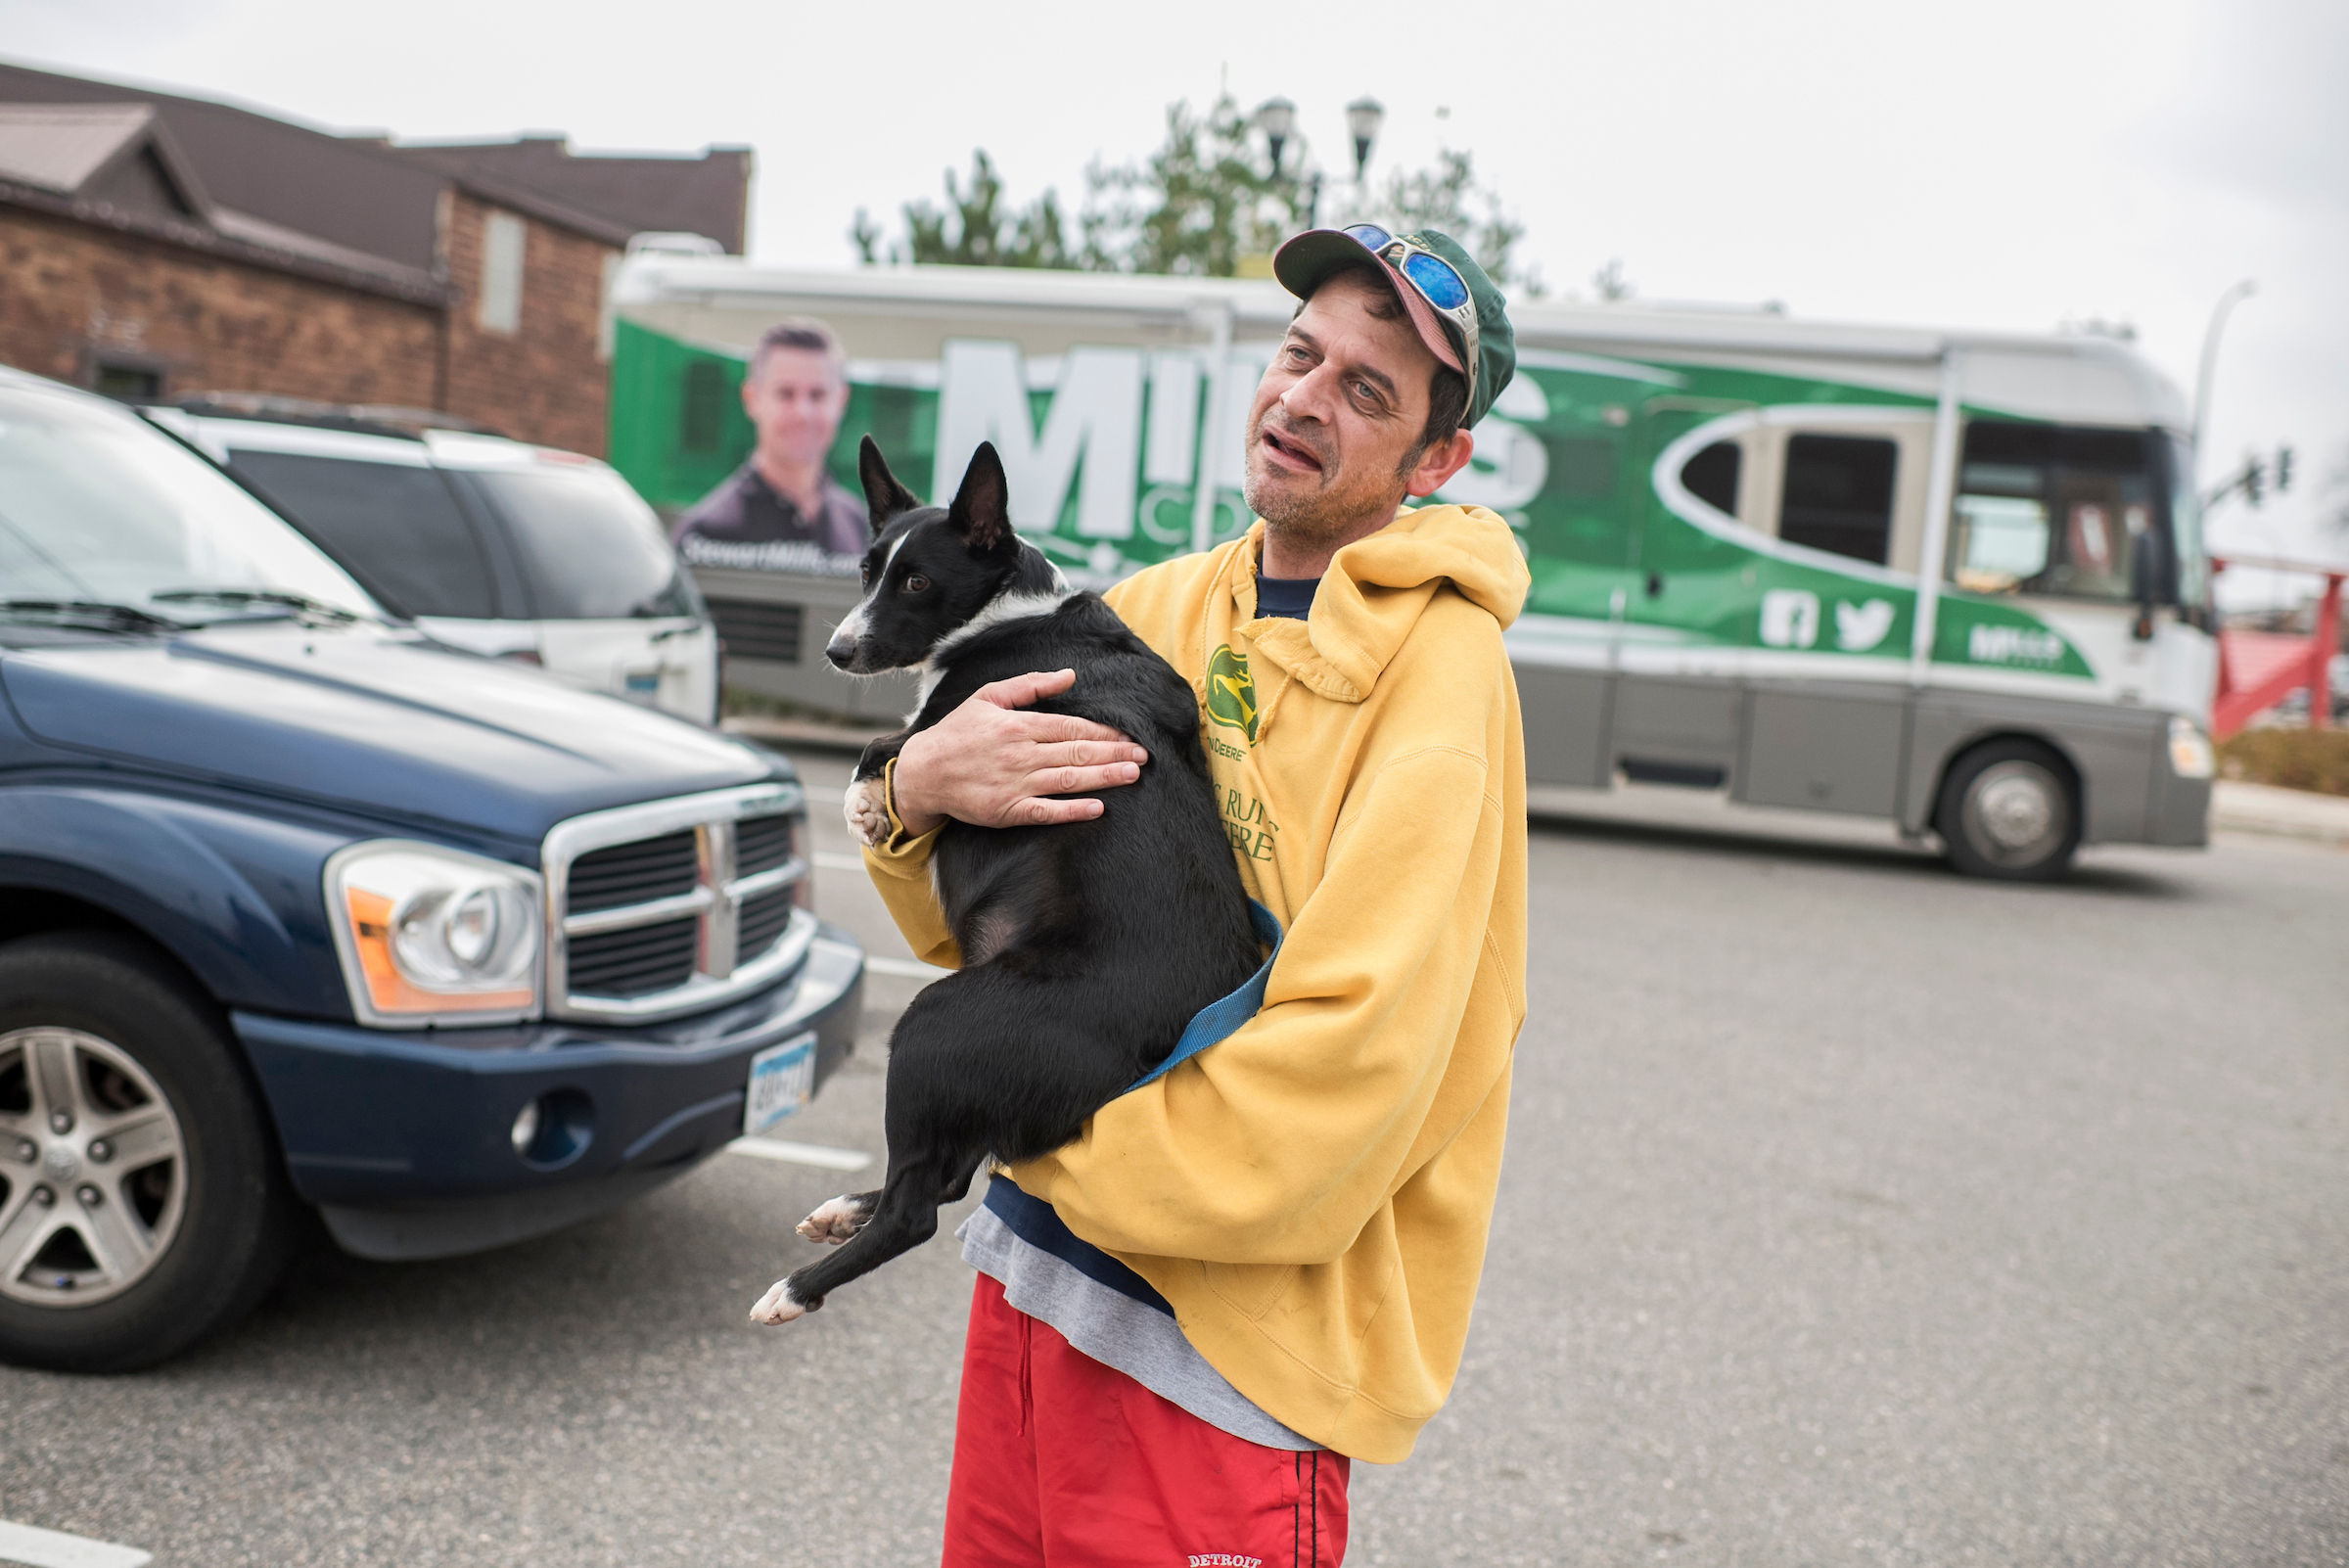 Tom Kearney, a Mills supporter, prepares for a photo with his dog Jazzmyne, in front of Mills' bus in Grand Rapids, Minn. (Tom Williams/CQ Roll Call)